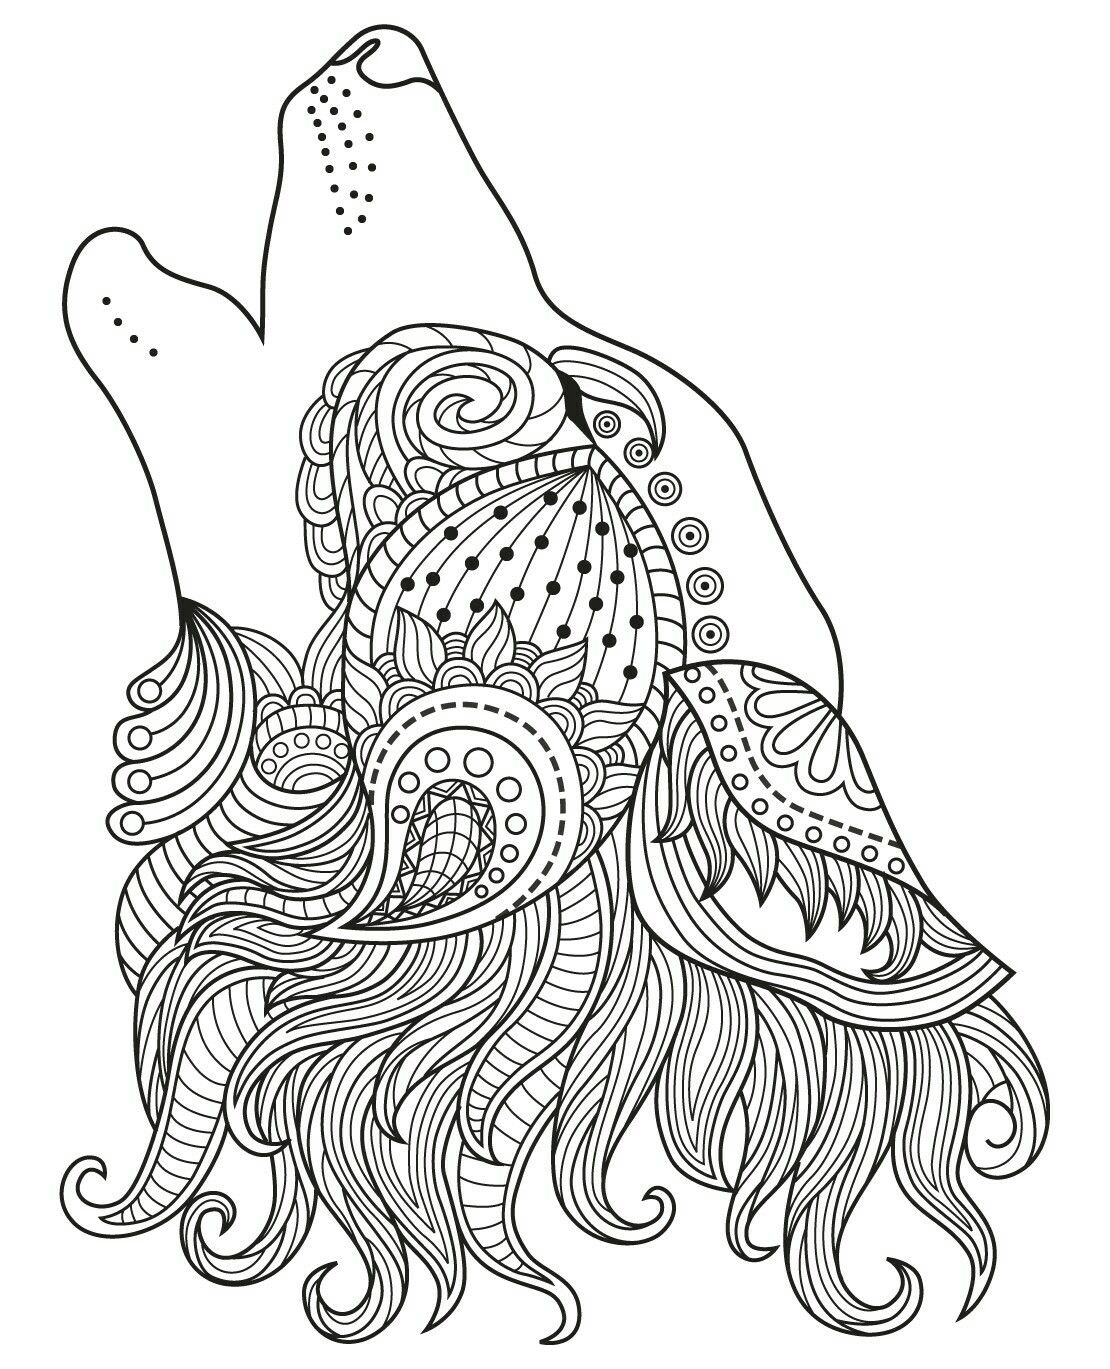 Wolf Coloring Page With Images Animal Doodles Art Black And